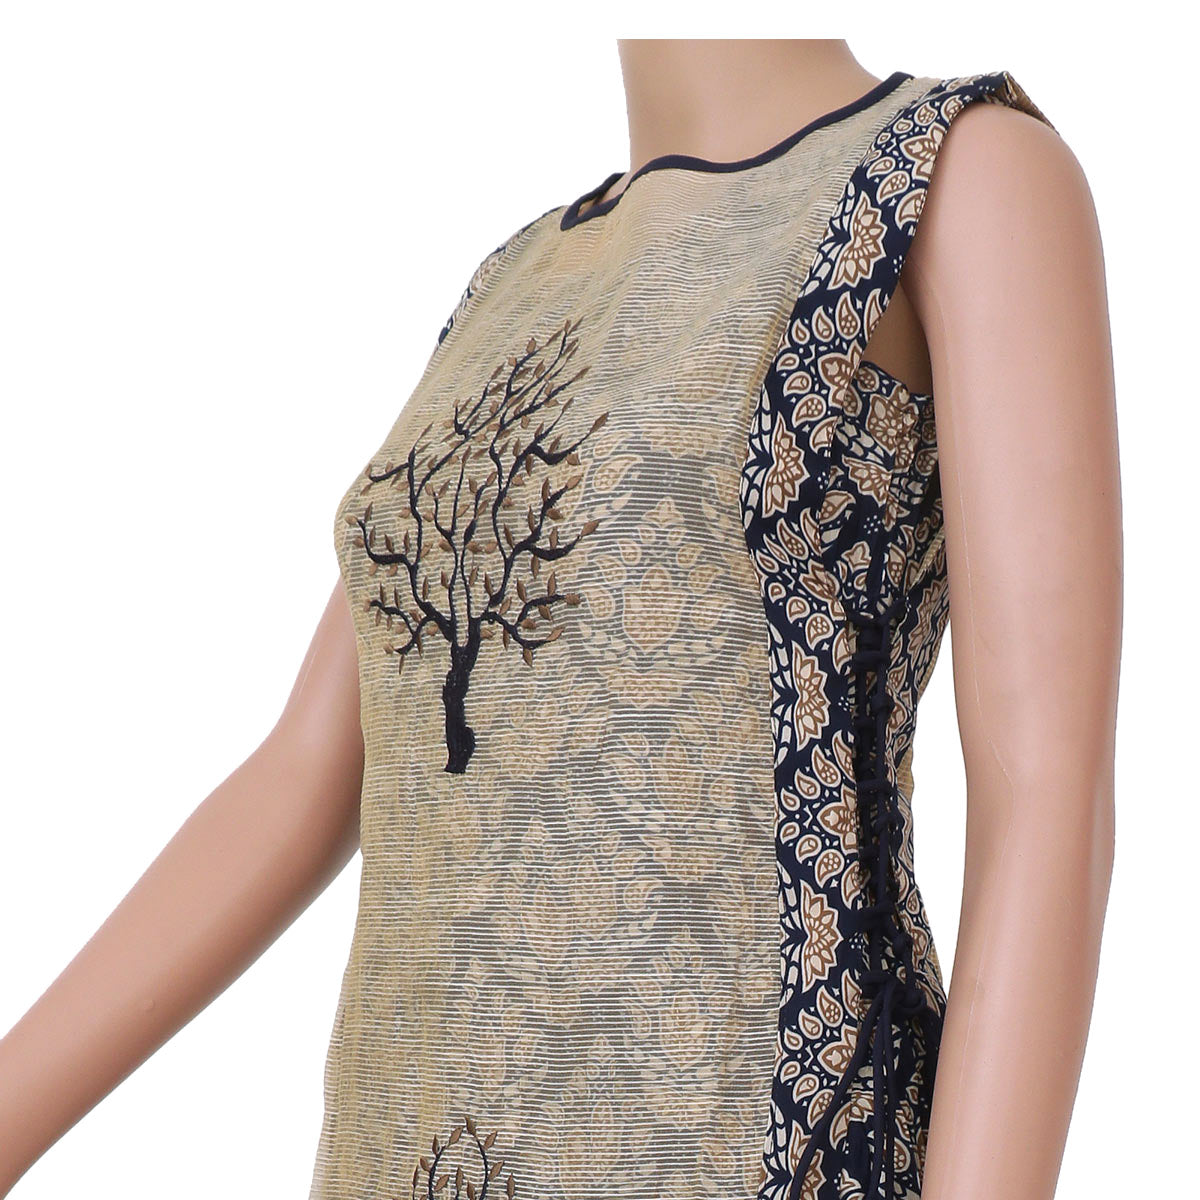 Cotton Kurta Beige and Blue with floral design for Rs.Rs. 1670.00 | kurta by Prashanti Sarees